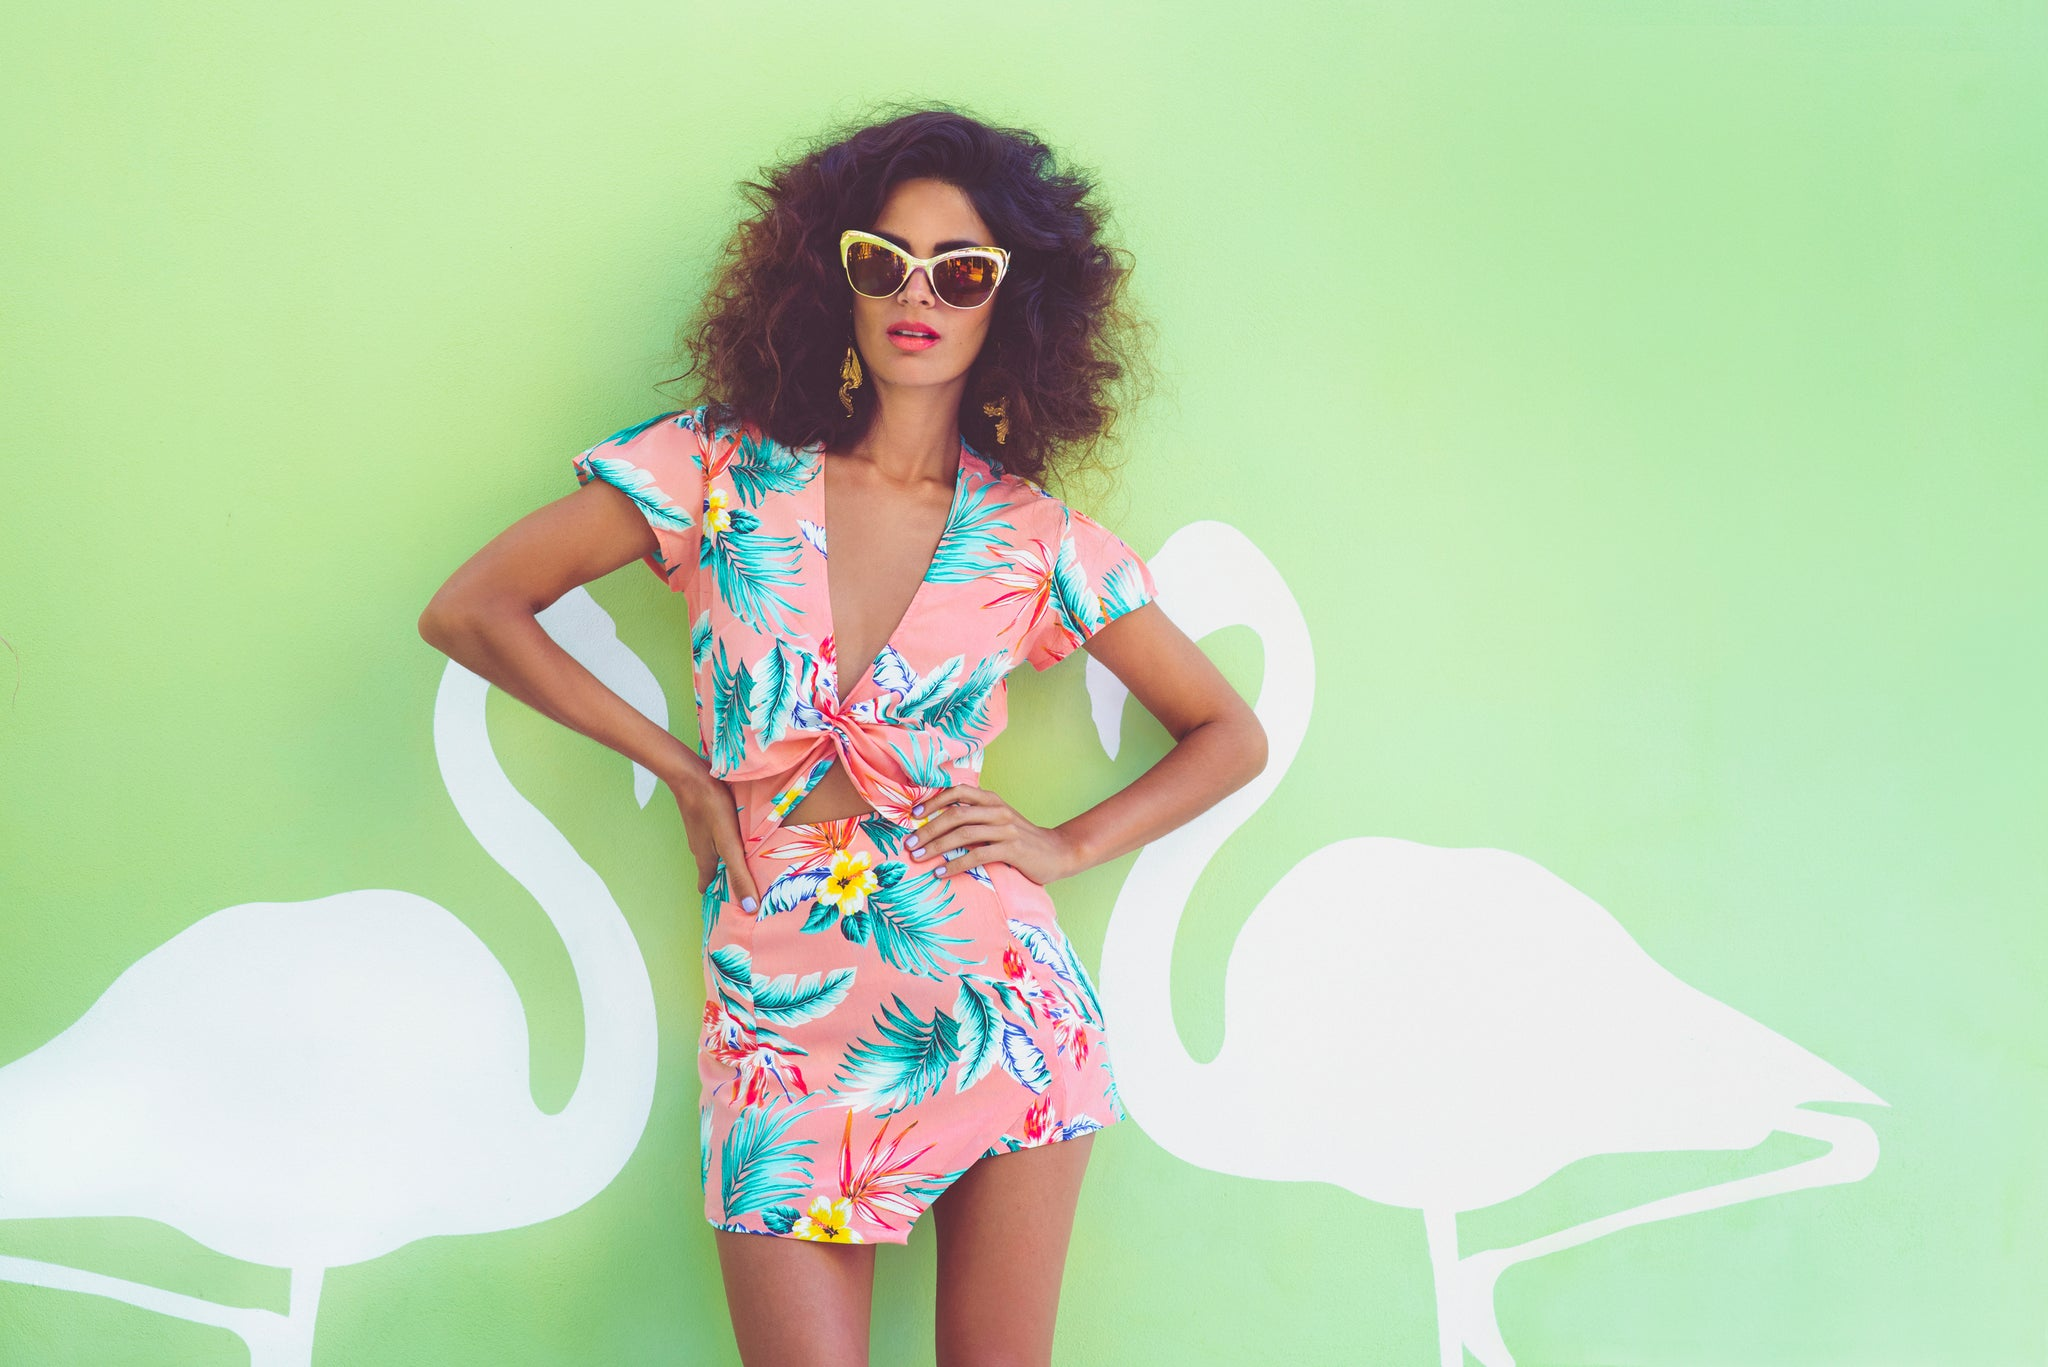 Sarah Qaiser wearing pink floral two piece in front of green flamingo background